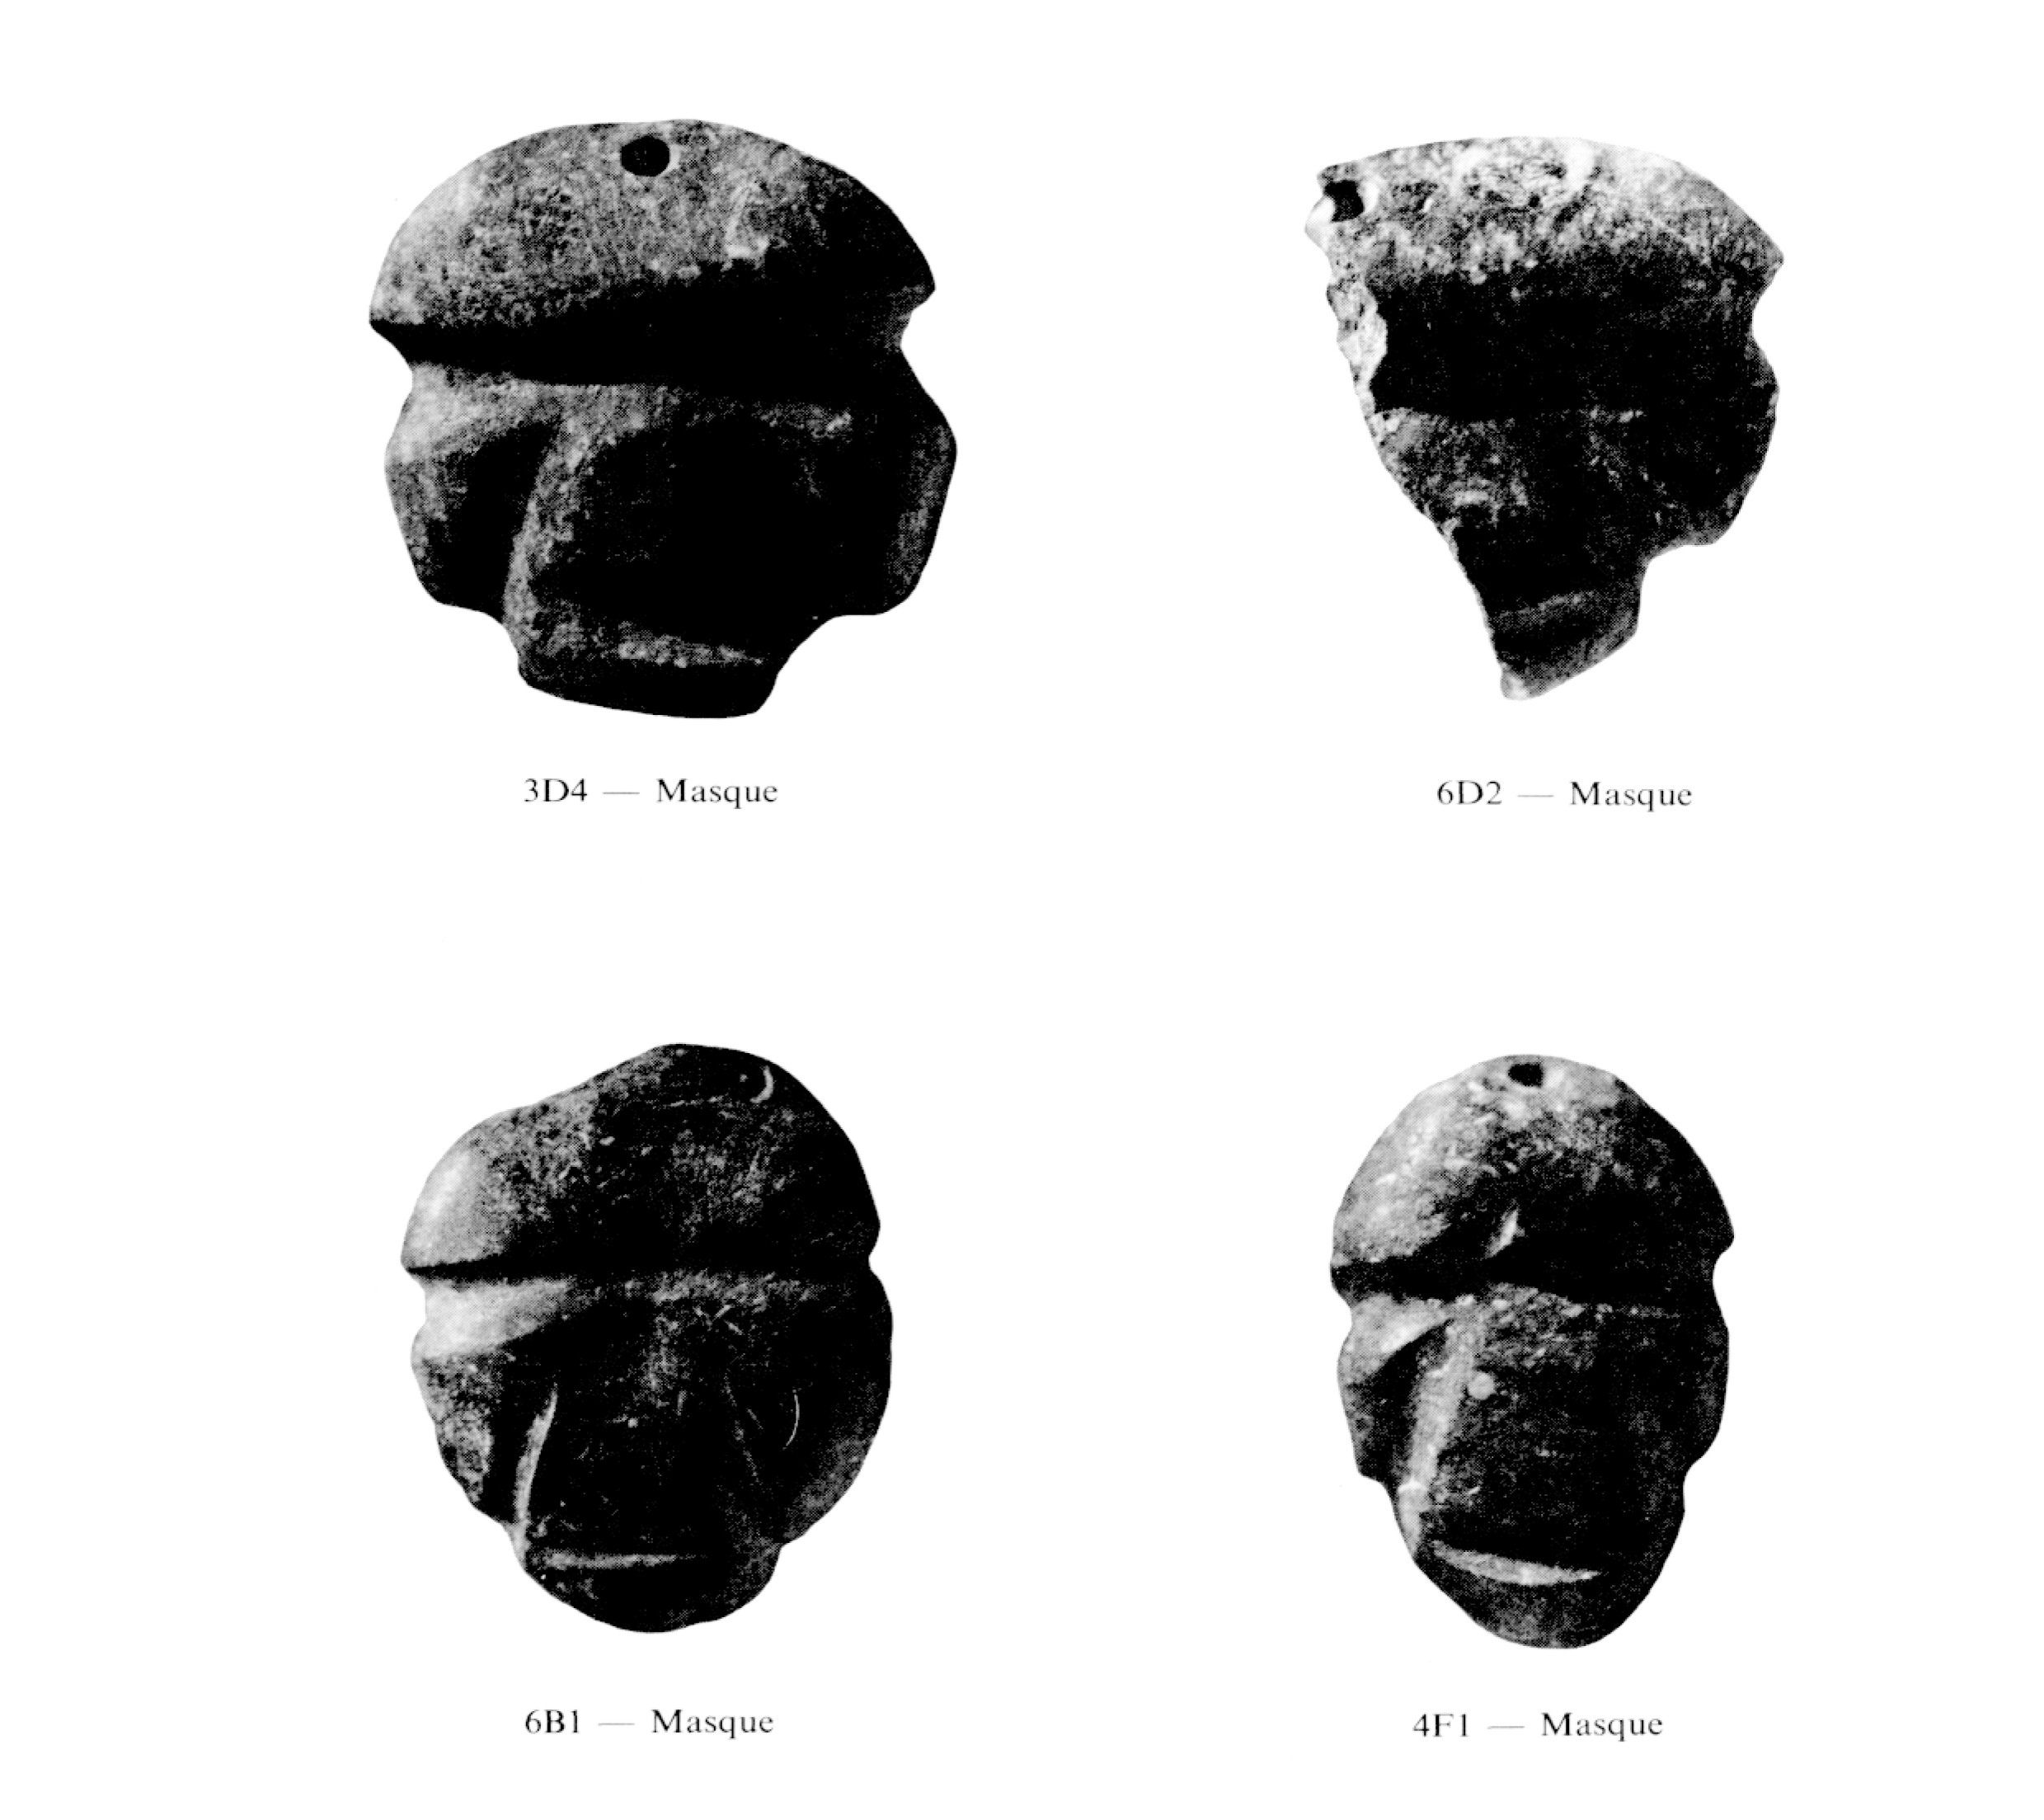 Discovery of Mezcala Masks at the archaeological site of Ahuinahuac